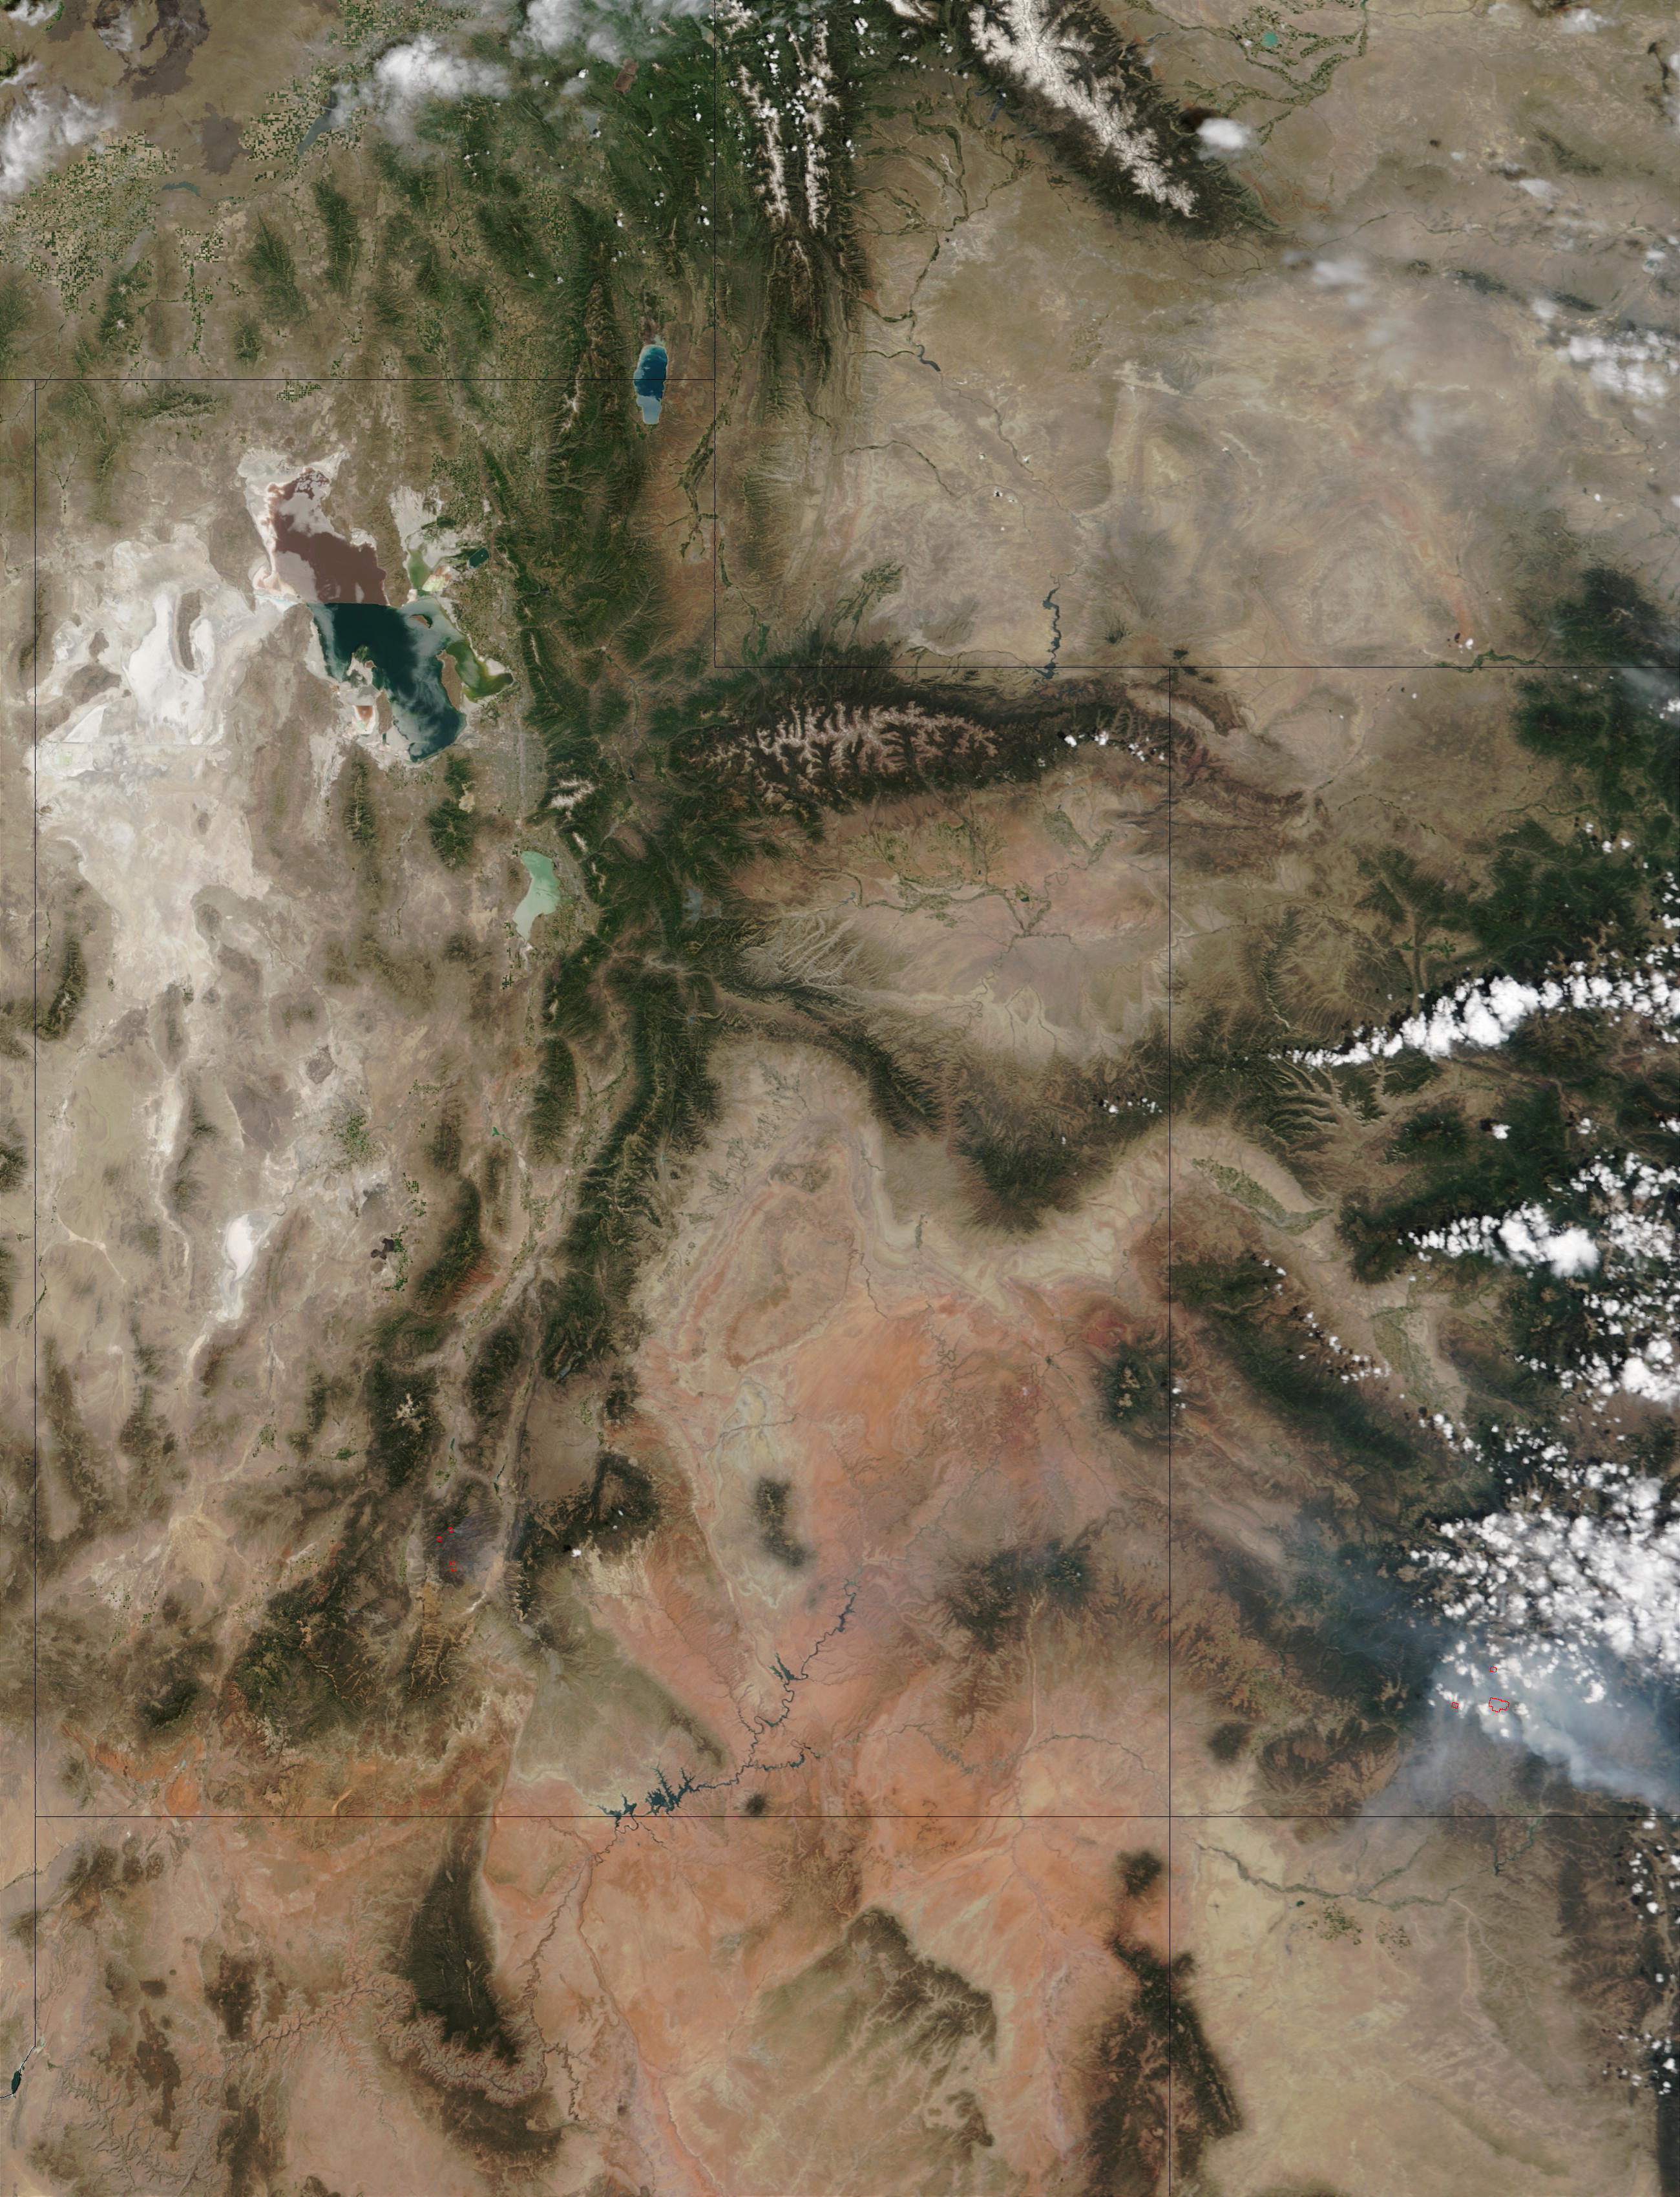 Fires in Utah and Colorado